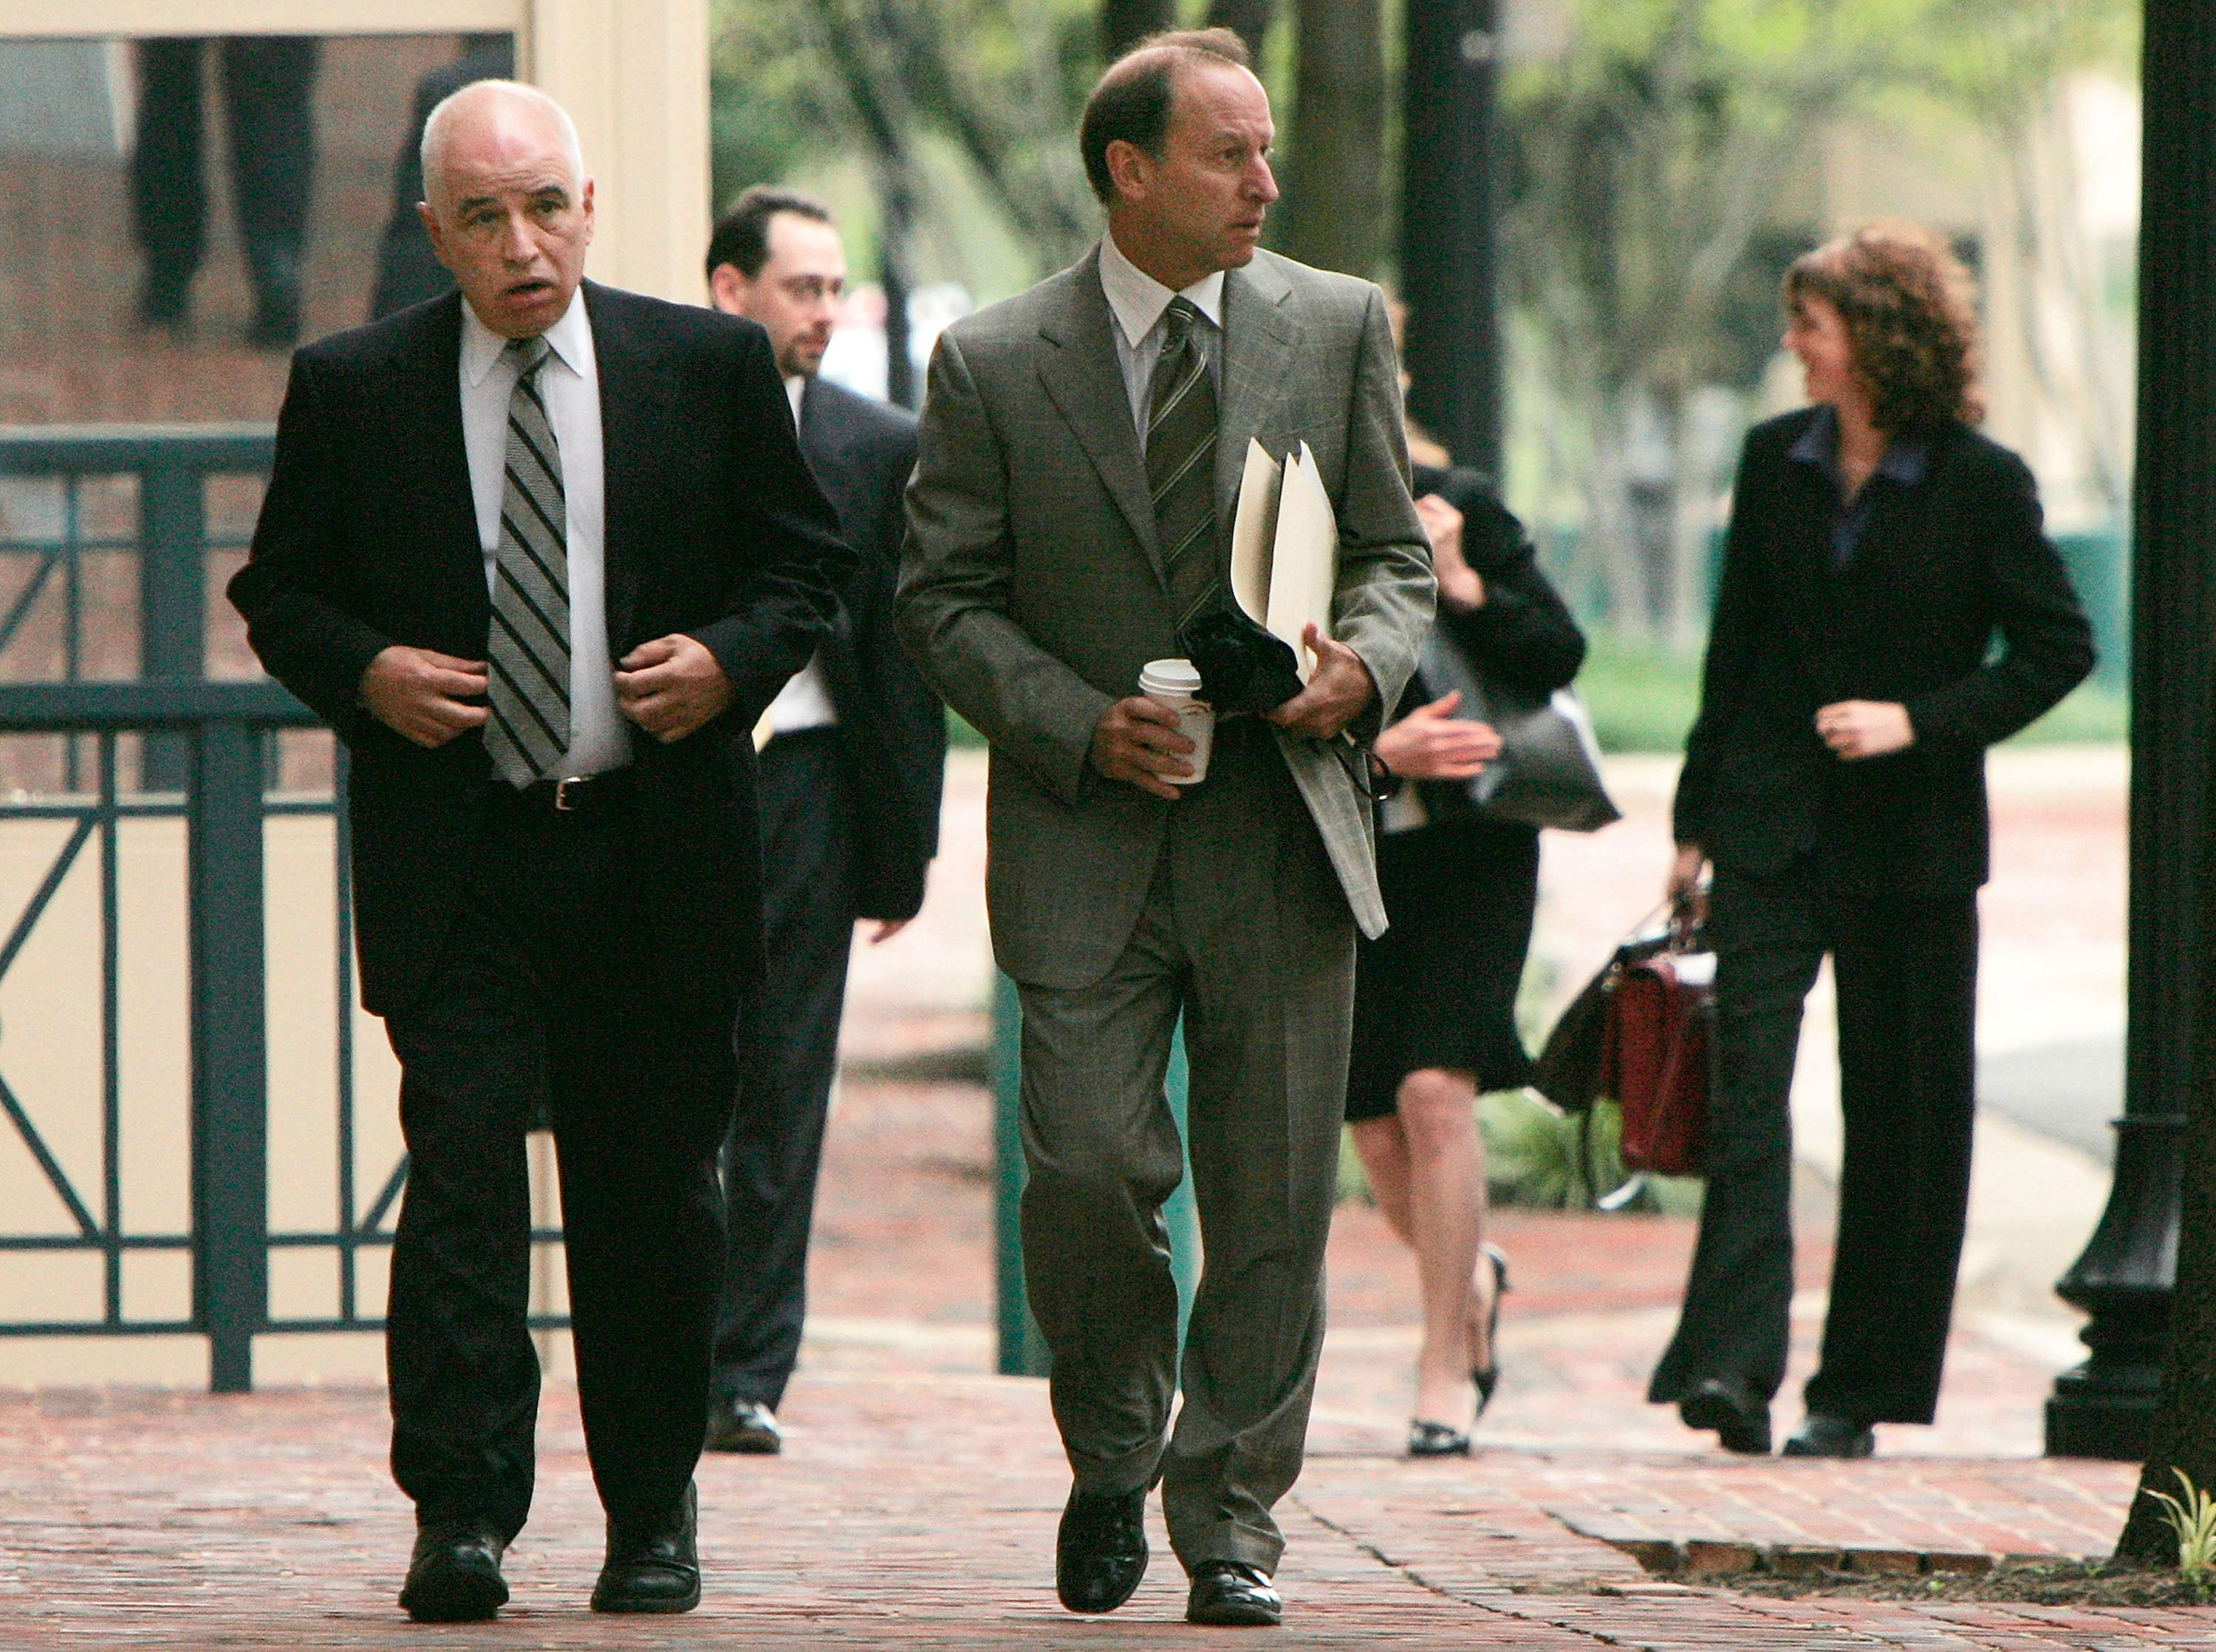 For the Defense:Abbe Lowell (right) accompanies ex-AIPAC official Steven Rosen from the courtroom in 2005.